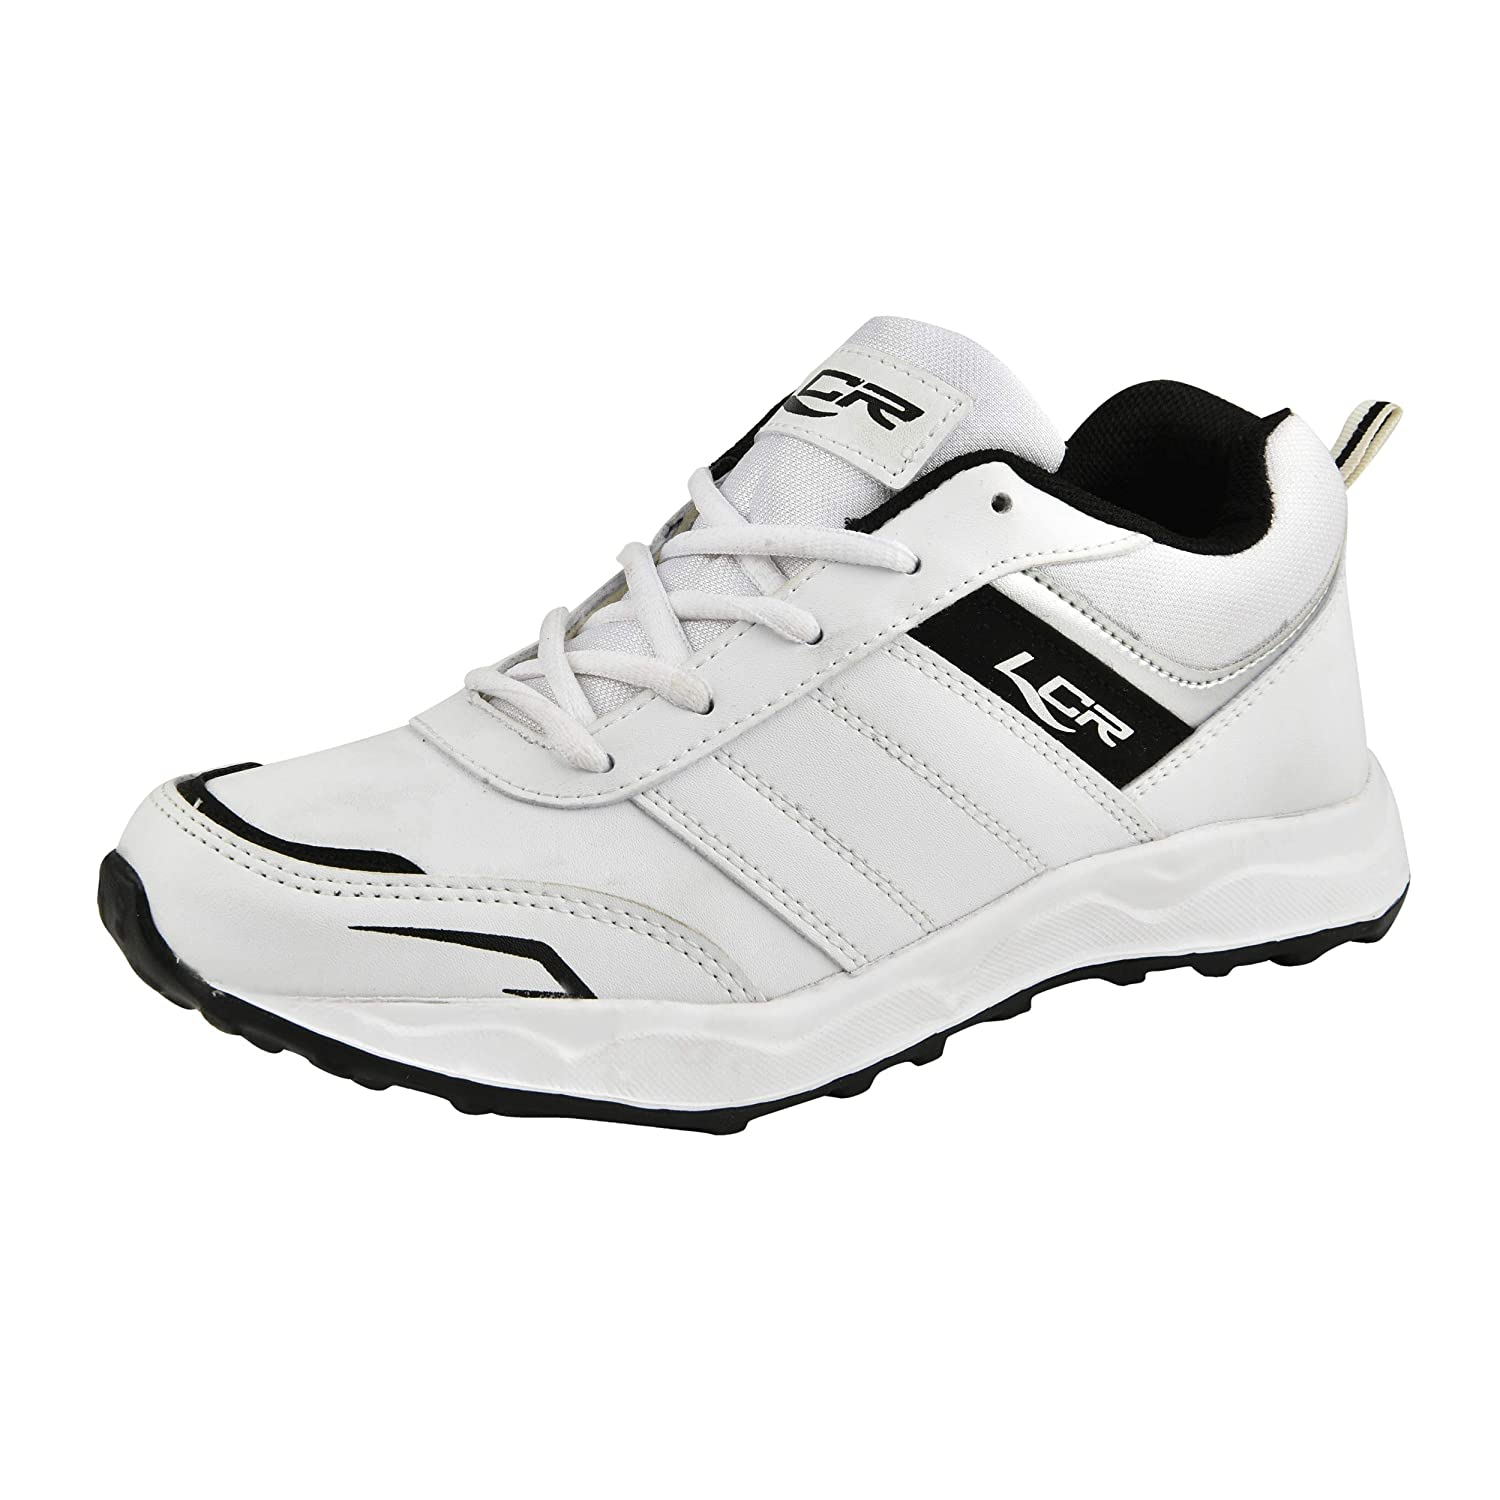 Buy Lancer White Lace-up Sports Shoes